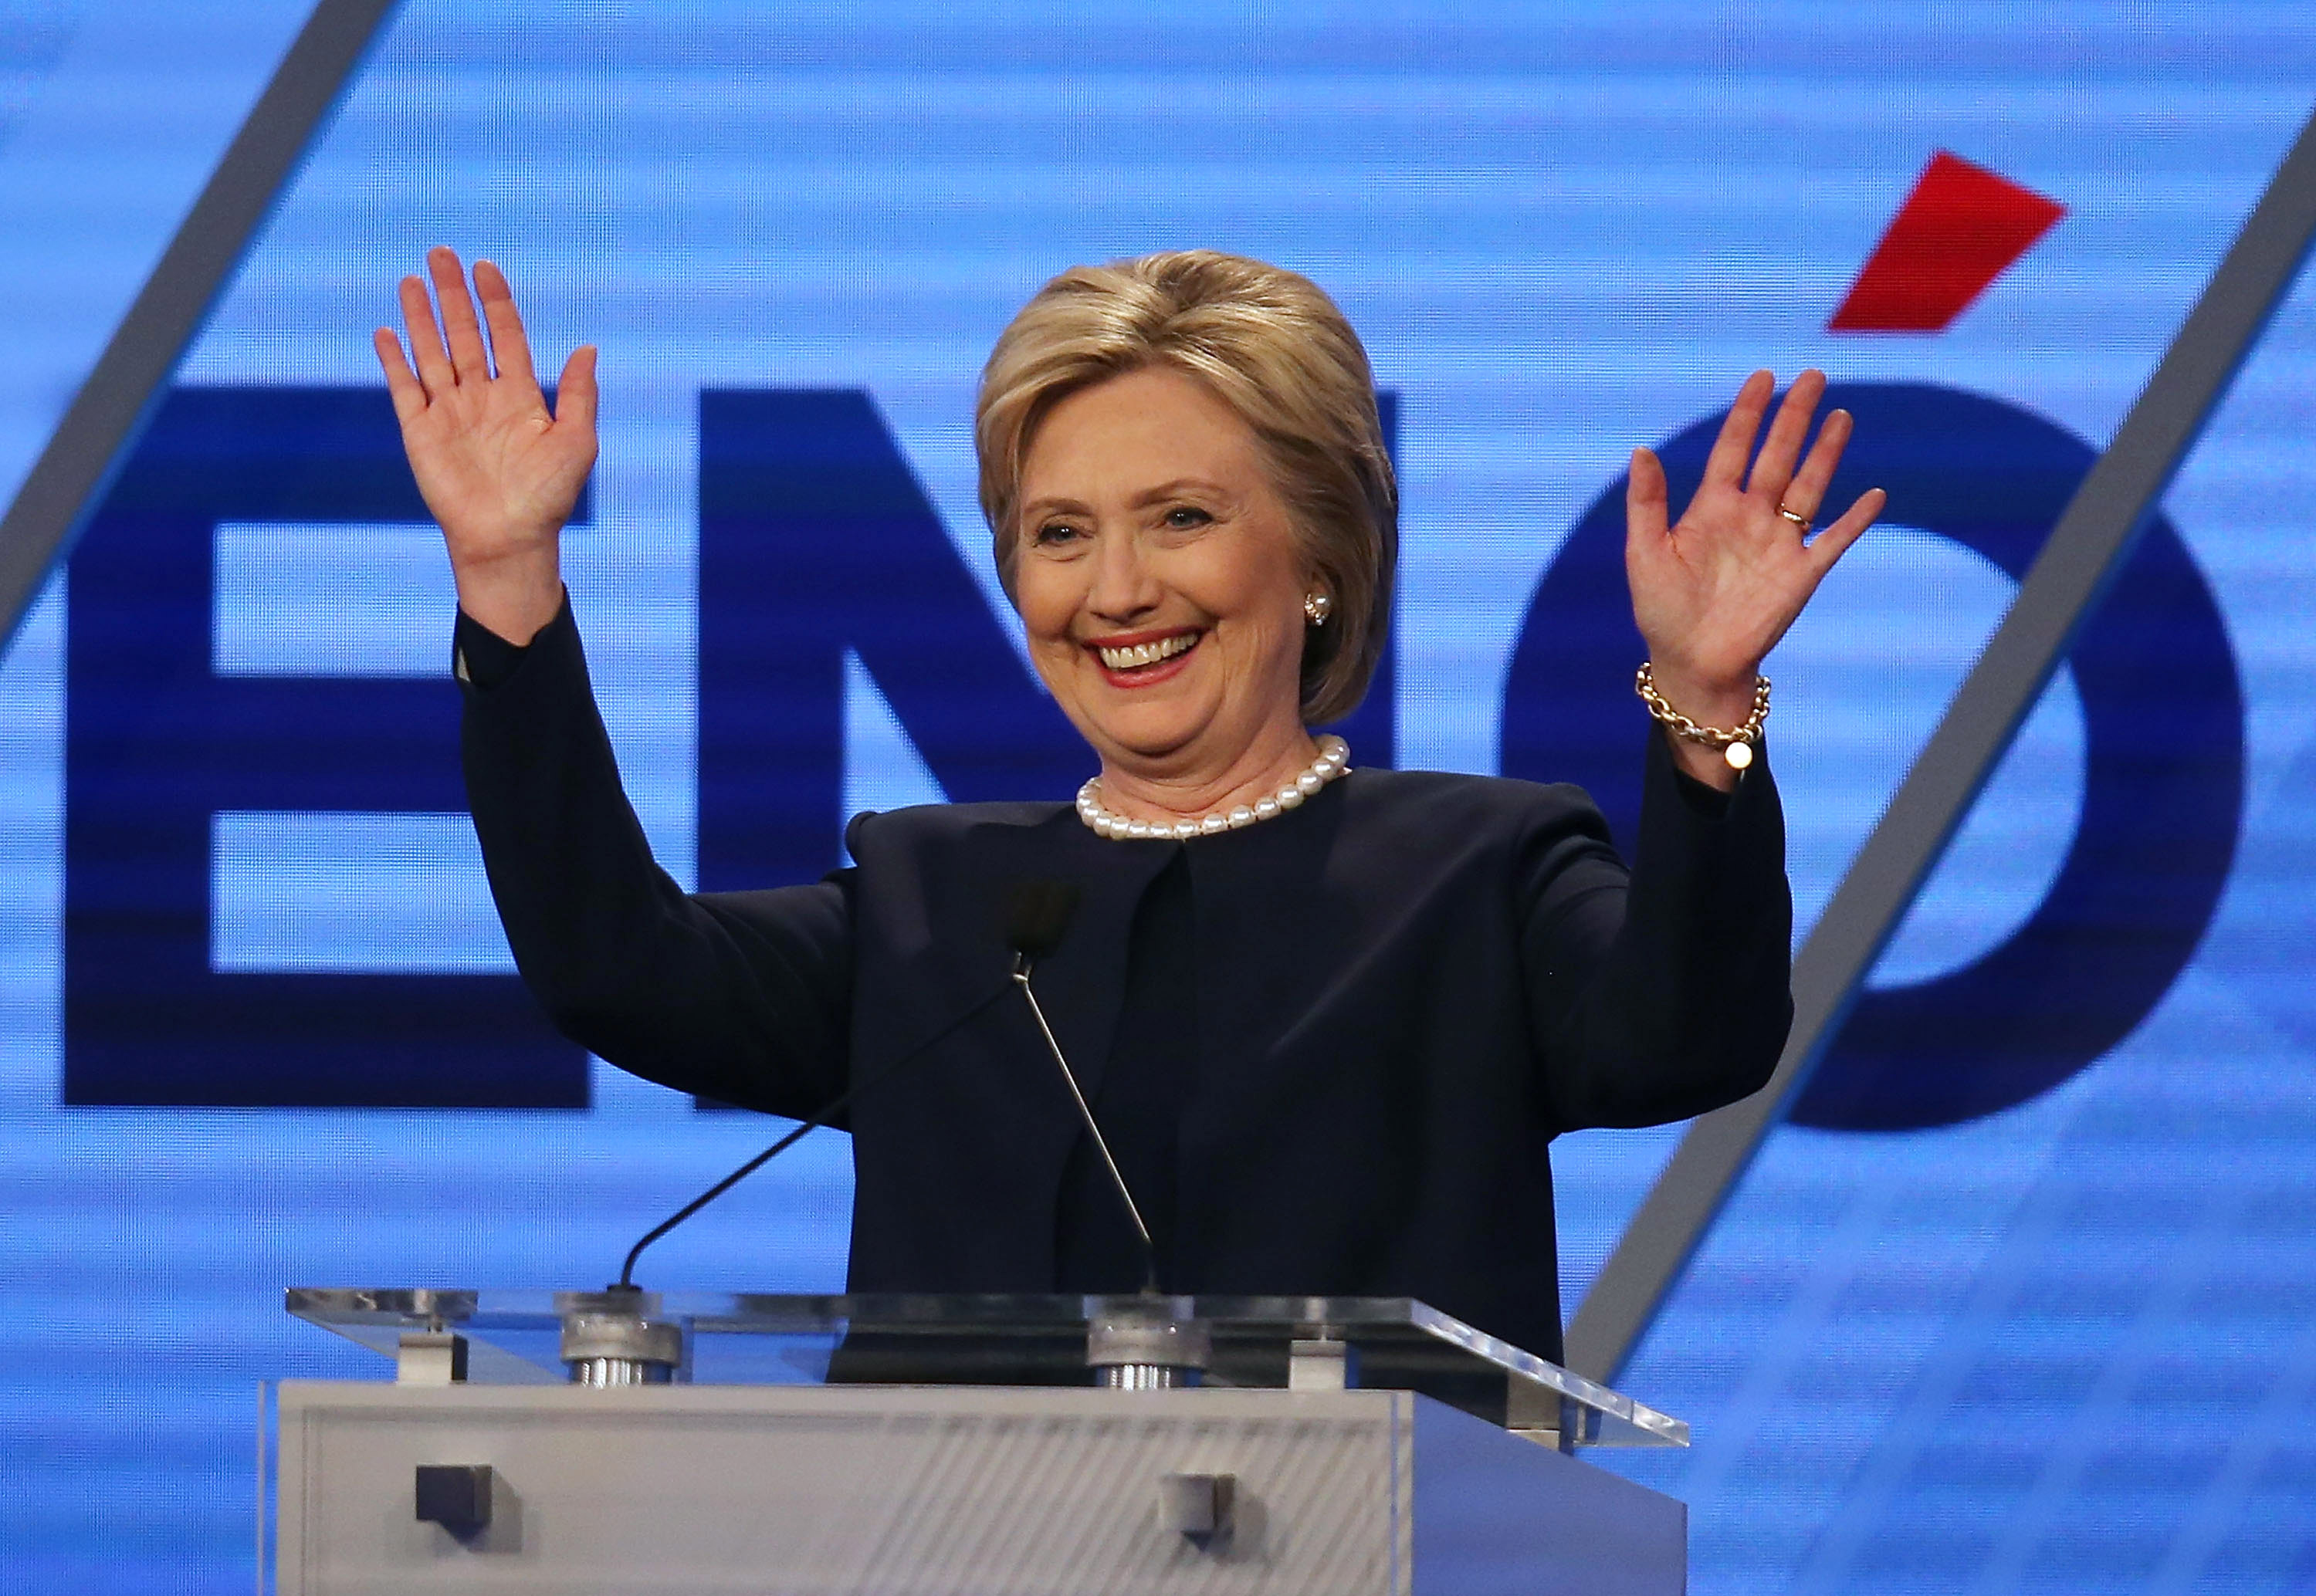 Democratic presidential candidate Hillary Clinton waves during her debate against Sen. Bernie Sanders (D-VT) at the Univision News and Washington Post Democratic Presidential Primary Debate on March 9, in Miami, Florida.